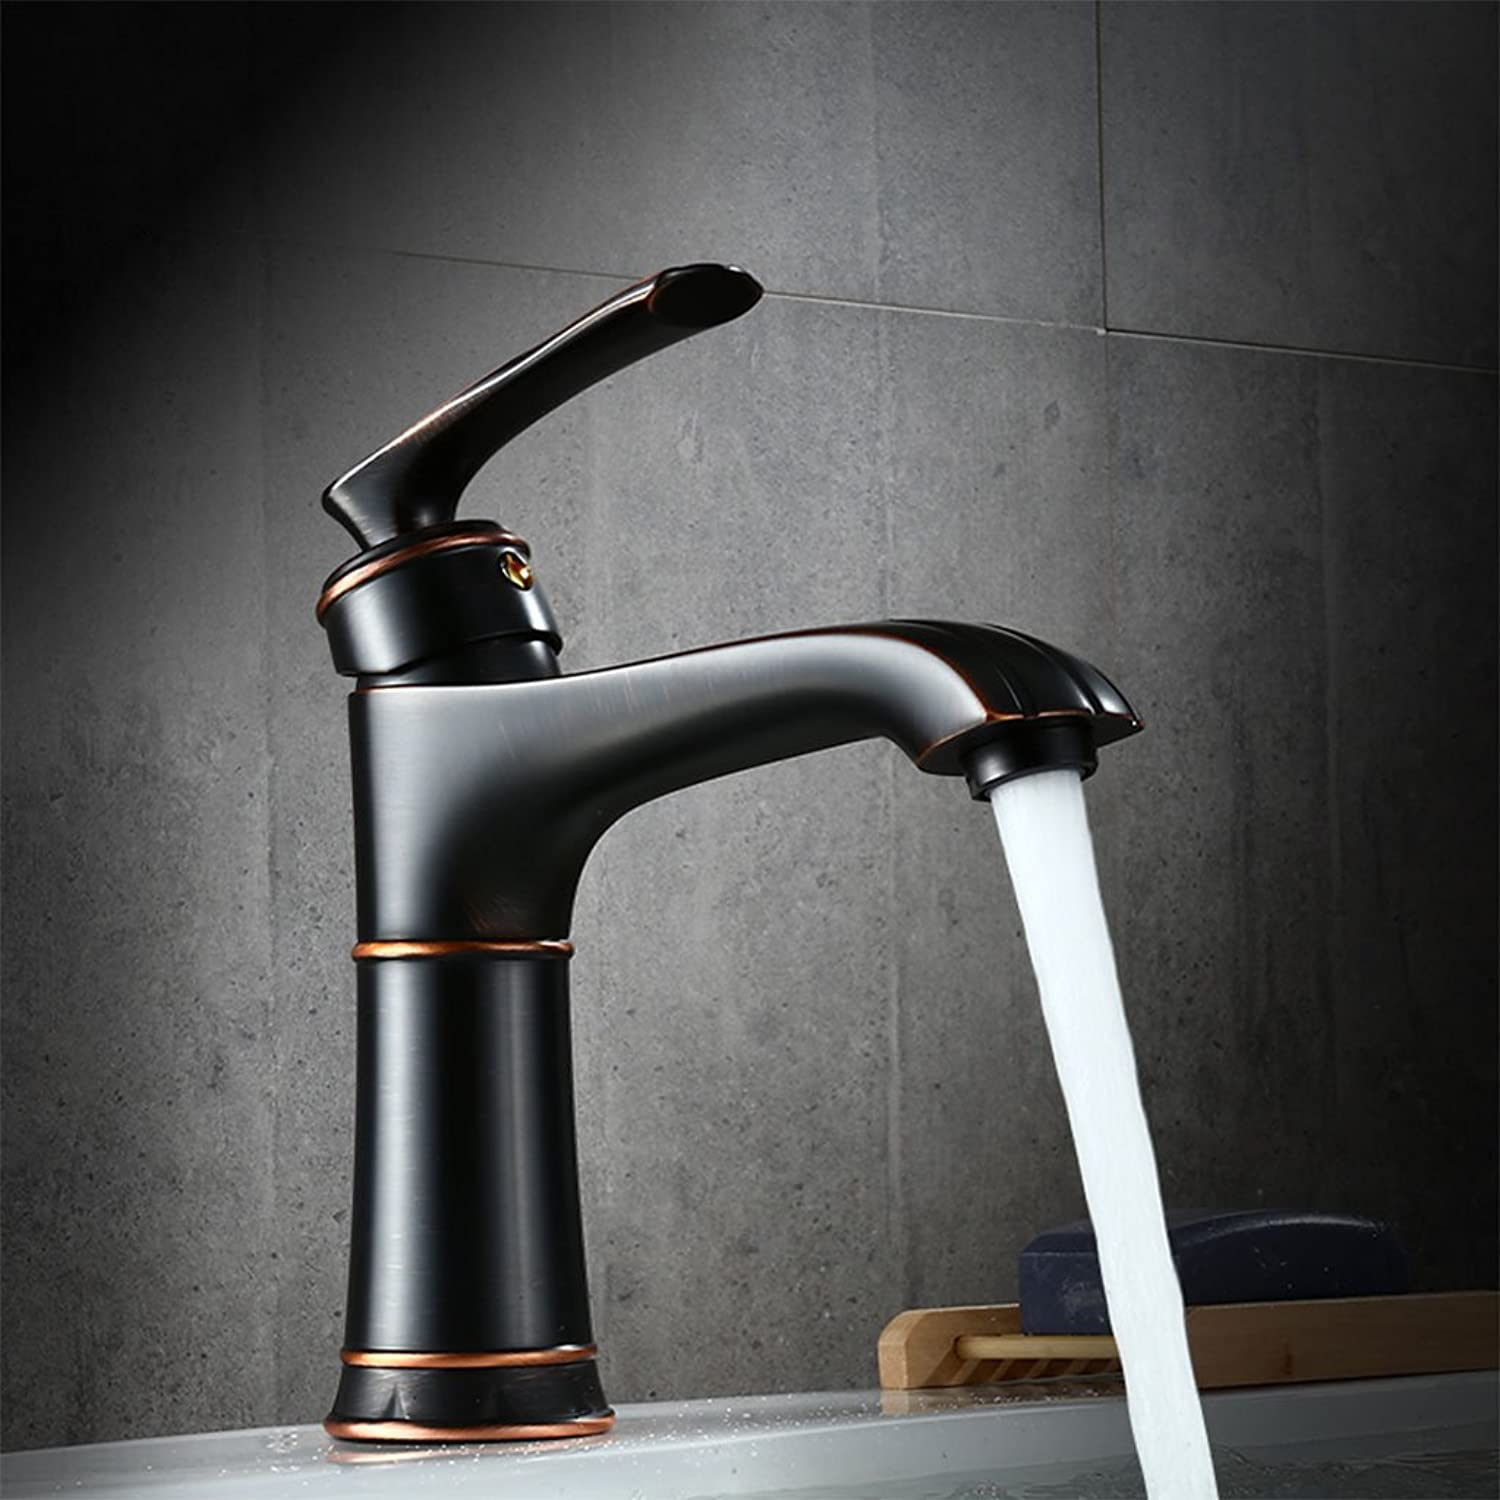 Antique European Creative Basin Mixer Retro High-end Fashion Hot And Cold Faucet